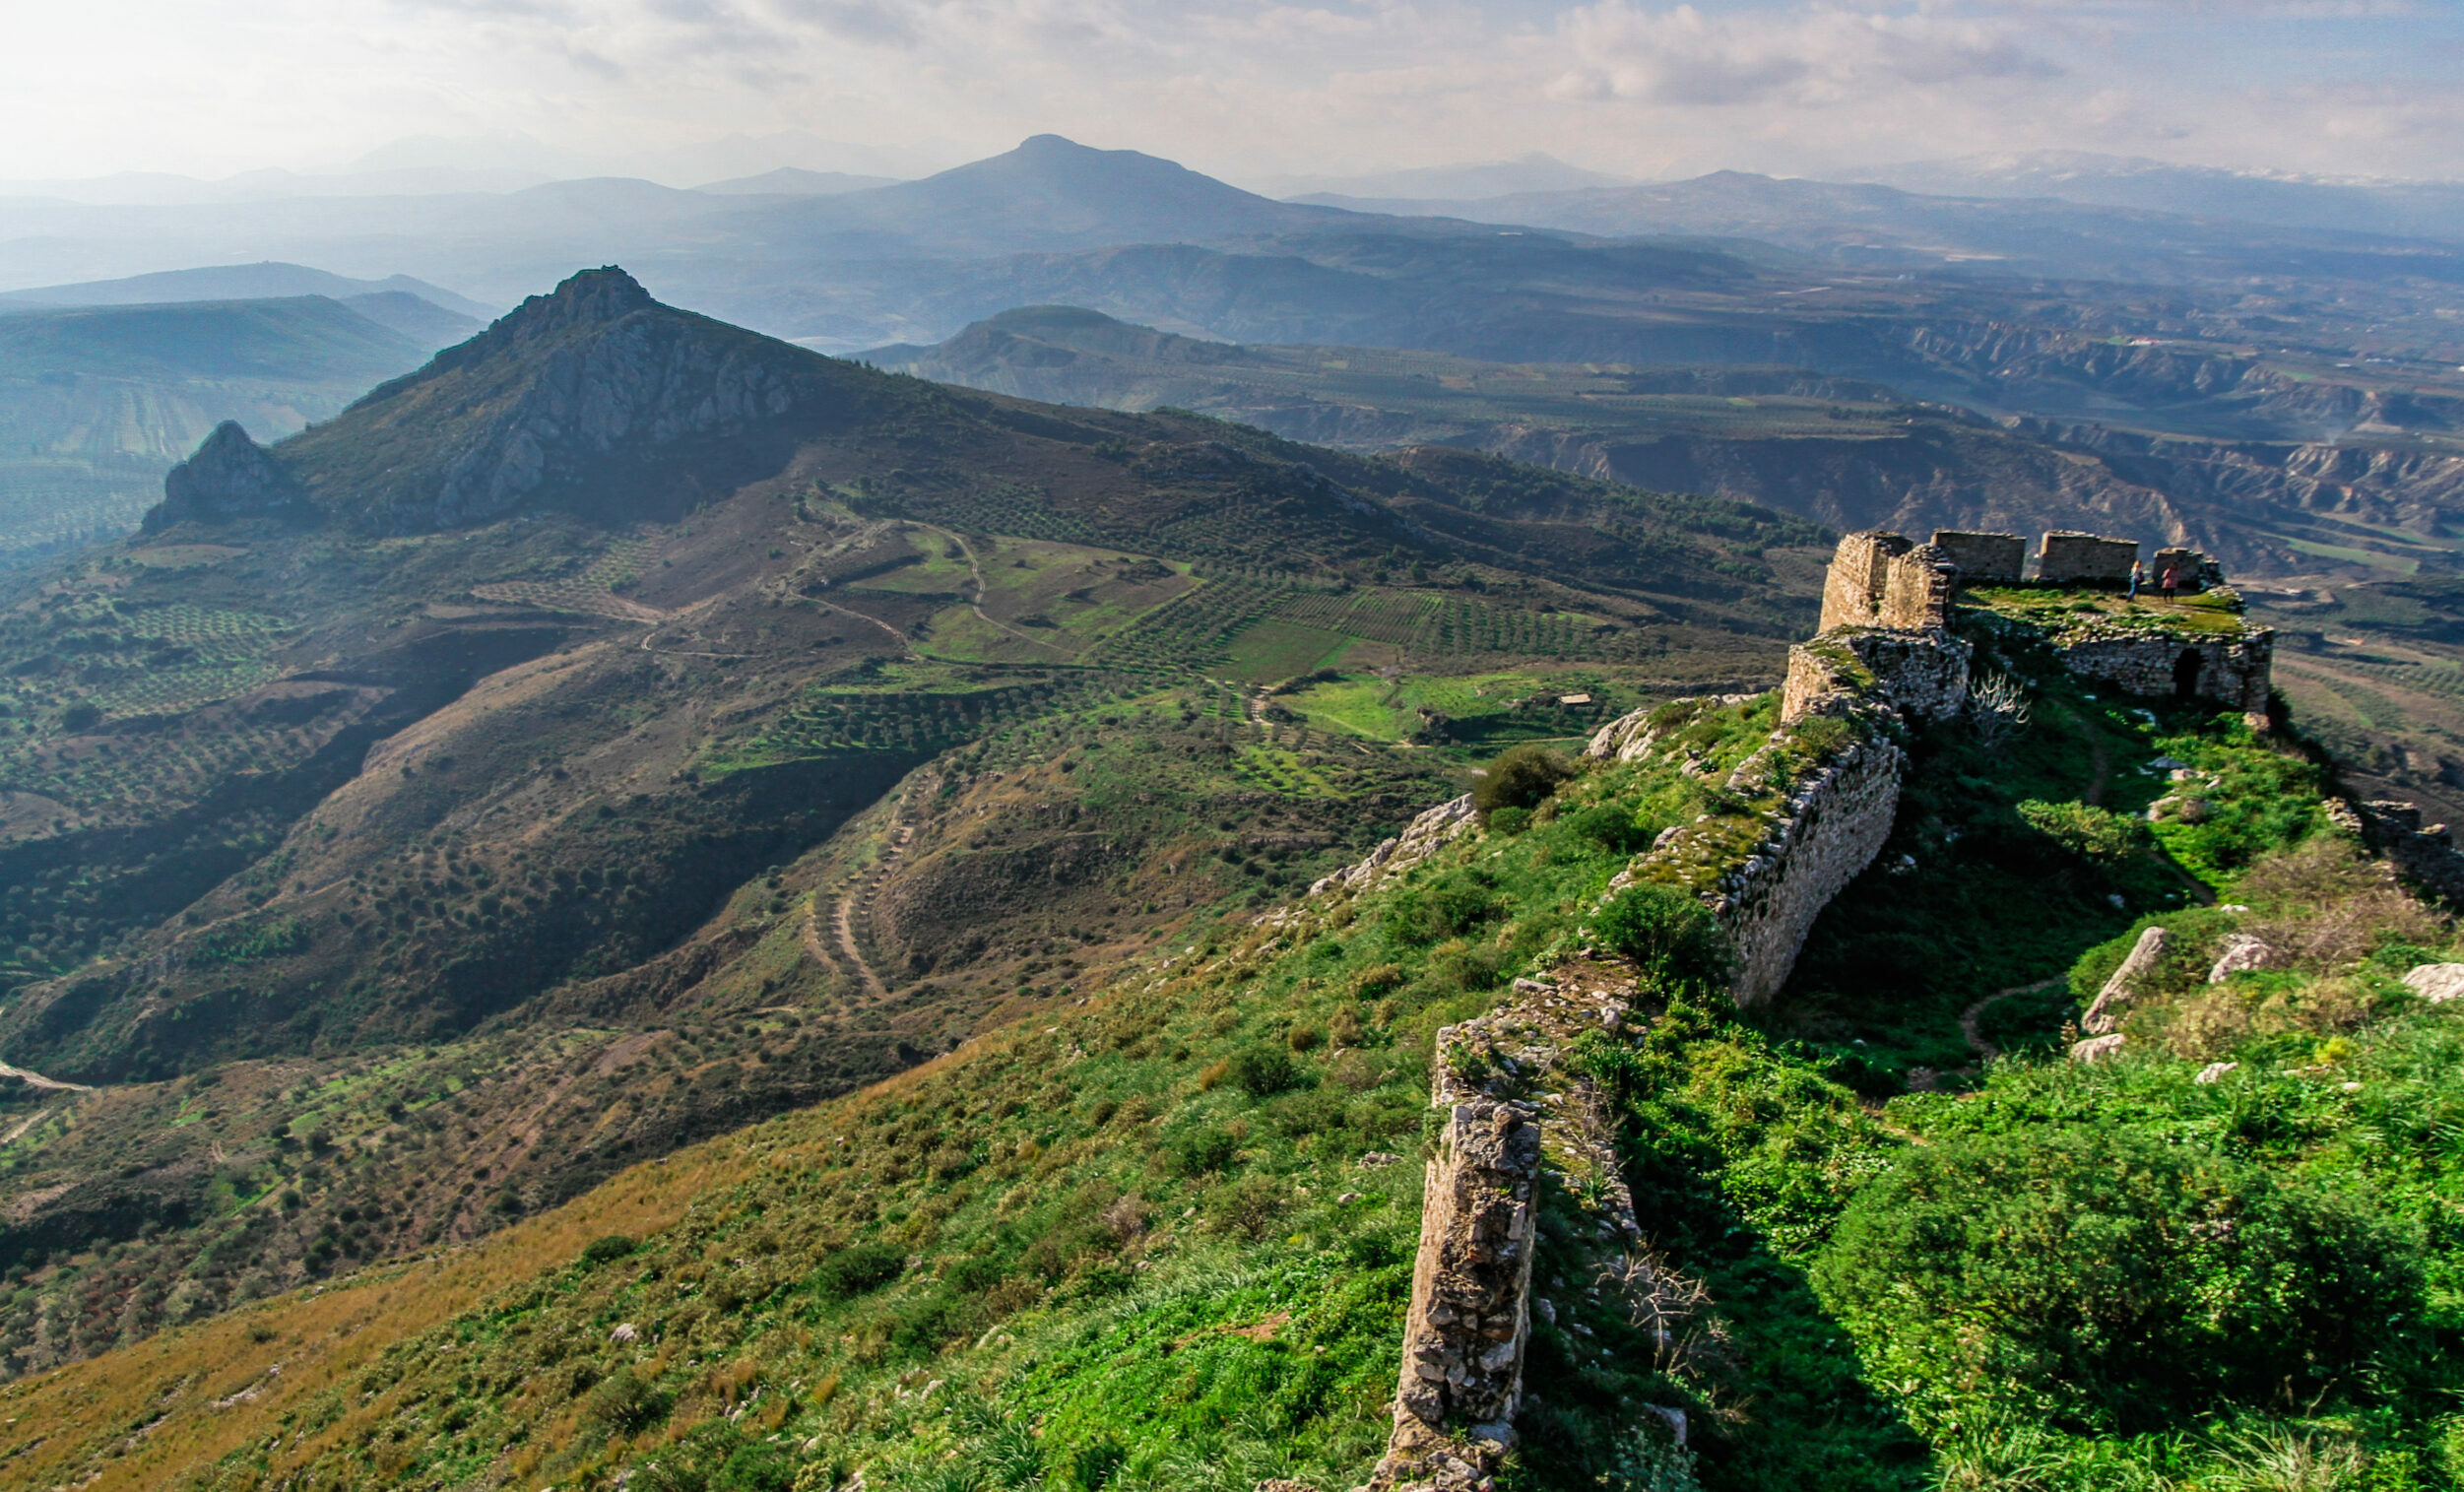 Corinth: Acrocorinth, the unknown imposing rock and its history